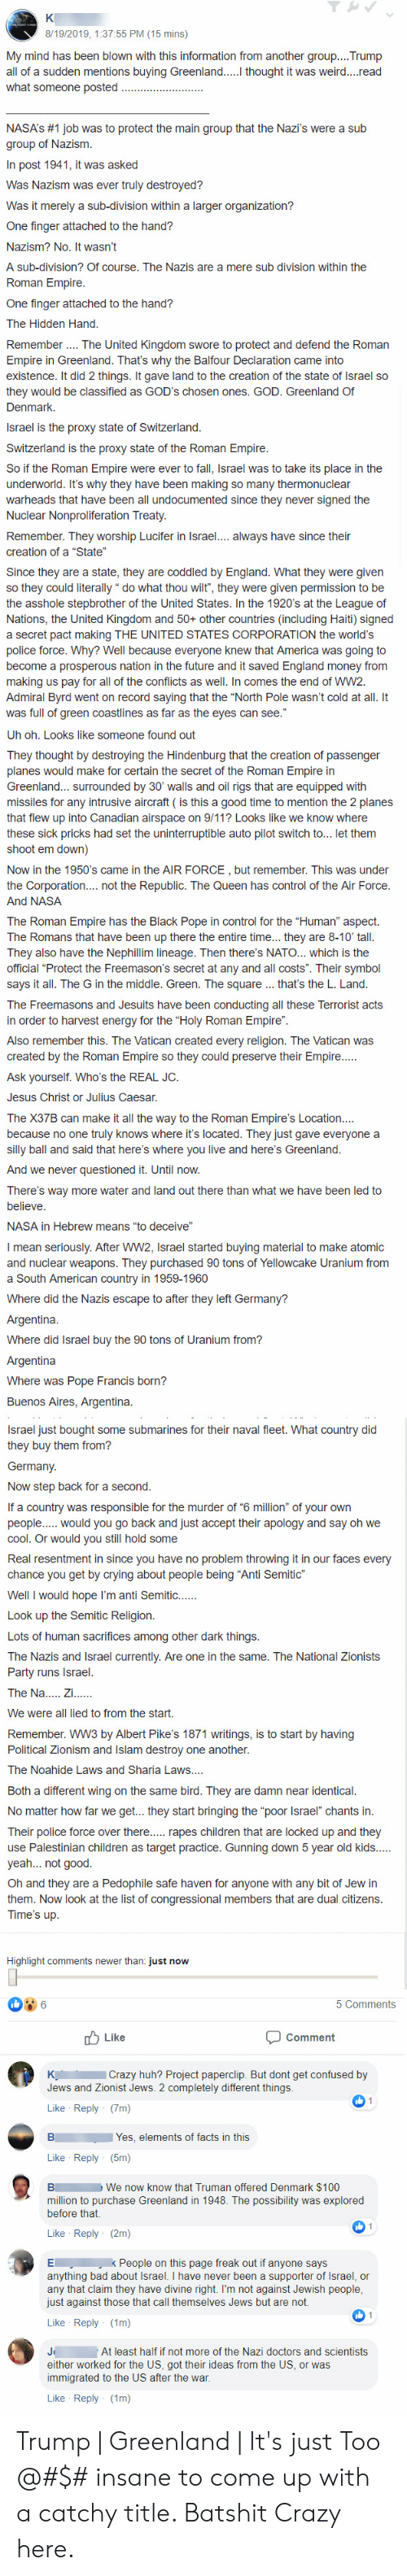 """9/11, America, and Bad: 8/19/2019, 1:37:55 PM (15 mins)  My mind has been blown with this information from another group....Trump  all of a sudden mentions buying Greenland.. thought it was weird....read  what someone posted  NASA's #1 job was to protect the main group that the Nazi's were a sub  group of Nazism  In post 1941, it was asked  Was Nazism was ever truly destroyed?  Was it merely a sub-division within a larger organization?  One finger attached to the hand?  Nazism? No. It wasn't  A sub-division? Of course. The Nazis are a mere sub division within the  Roman Empire.  One finger attached to the hand?  The Hidden Hand.  The United Kingdom swore to protect and defend the Roman  Remember.  Empire in Greenland. That's why the Balfour Declaration came into  existence. It did 2 things. It gave land to the creation of the state of Israel so  they would be classified as GOD's chosen ones. GOD. Greenland Of  Denmark.  Israel is the proxy state of Switzerland.  Switzerland is the proxy state of the Roman Empire  So if the Roman Empire were ever to fall, Israel was to take its place in the  underworld. It's why they have been making so many thermonuclear  warheads that have been all undocumented since they never signed the  Nuclear Nonproliferation Treaty  Remember. They worship Lucifer in Israel... always have since their  creation of a """"State""""  Since they are a state, they are coddled by England. What they were given  so they could literally do what thou wilt"""", they were given permission to be  the asshole stepbrother of the United States. In the 1920's at the League of  Nations, the United Kingdom and 50+ other countries (including Haiti) signed  a secret pact making THE UNITED STATES CORPORATION the world's  police force. Why? Well because everyone knew that America was going to  become a prosperous nation in the future and it saved England money from  making us pay for all of the conflicts as well. In comes the end of WW2  Admiral Byrd went on record saying tha"""